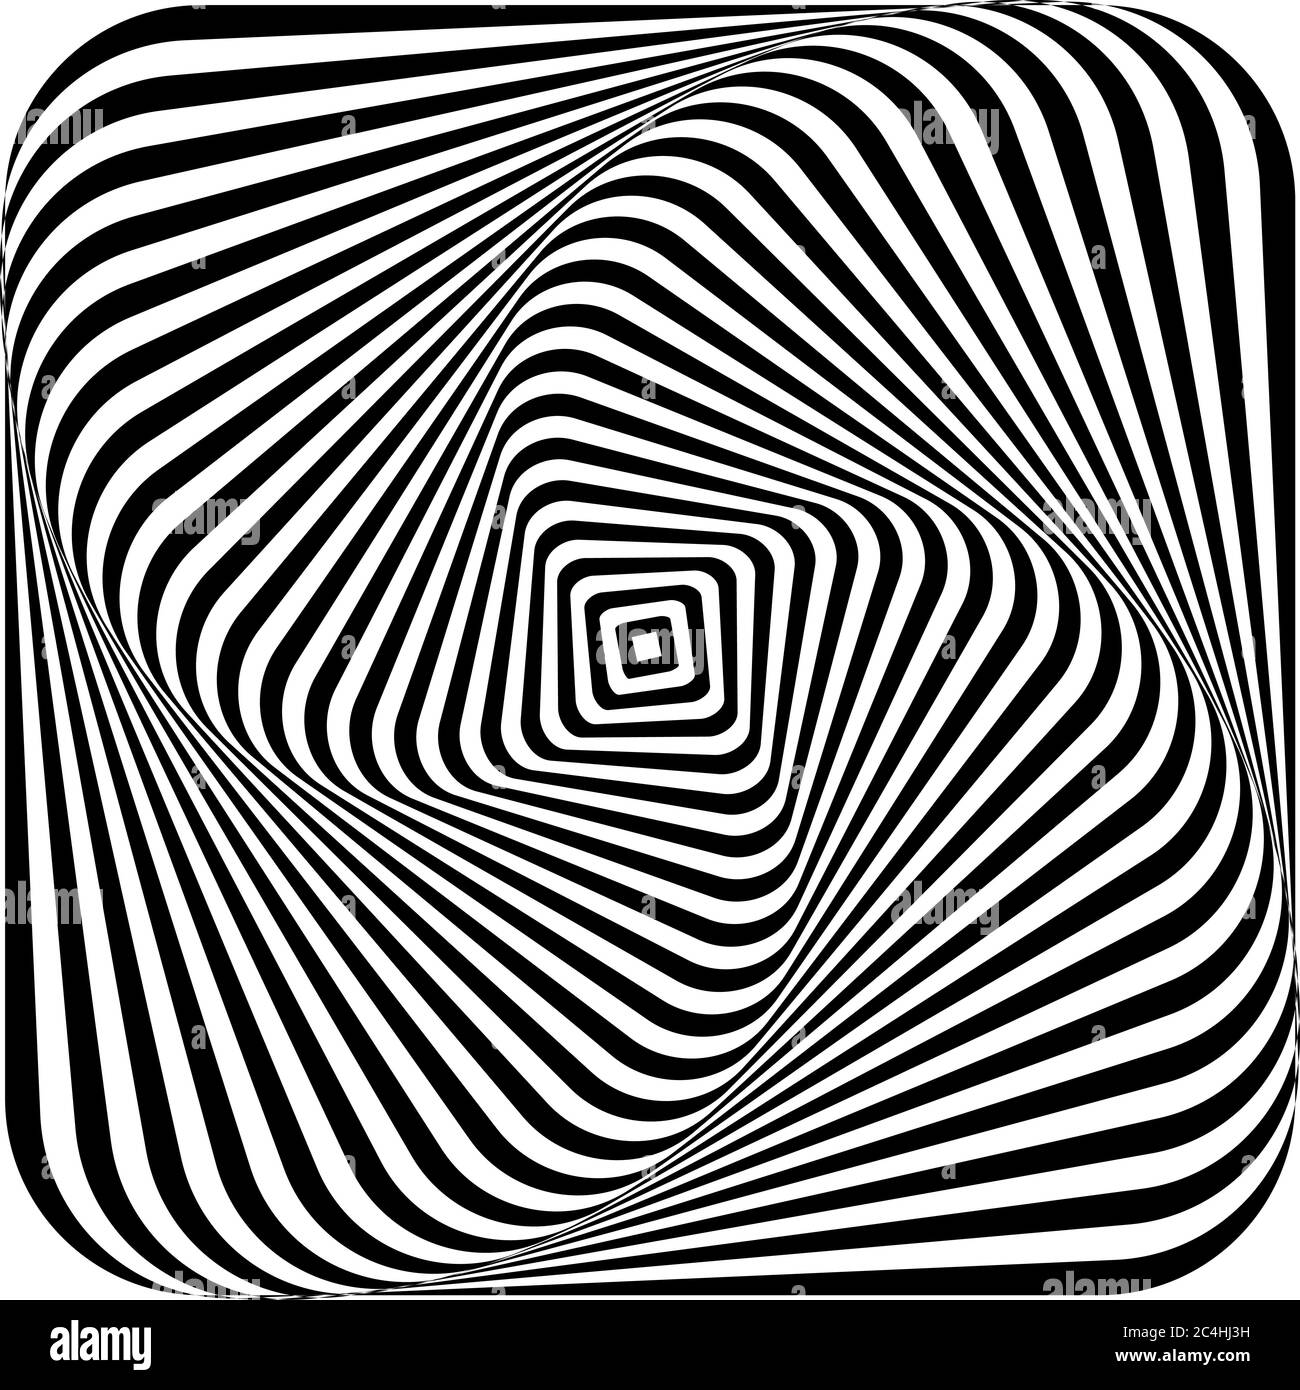 Optical illusion of swirling a picture torsion and rotation movement. Dynamic effect. Vector illustration. Stock Vector